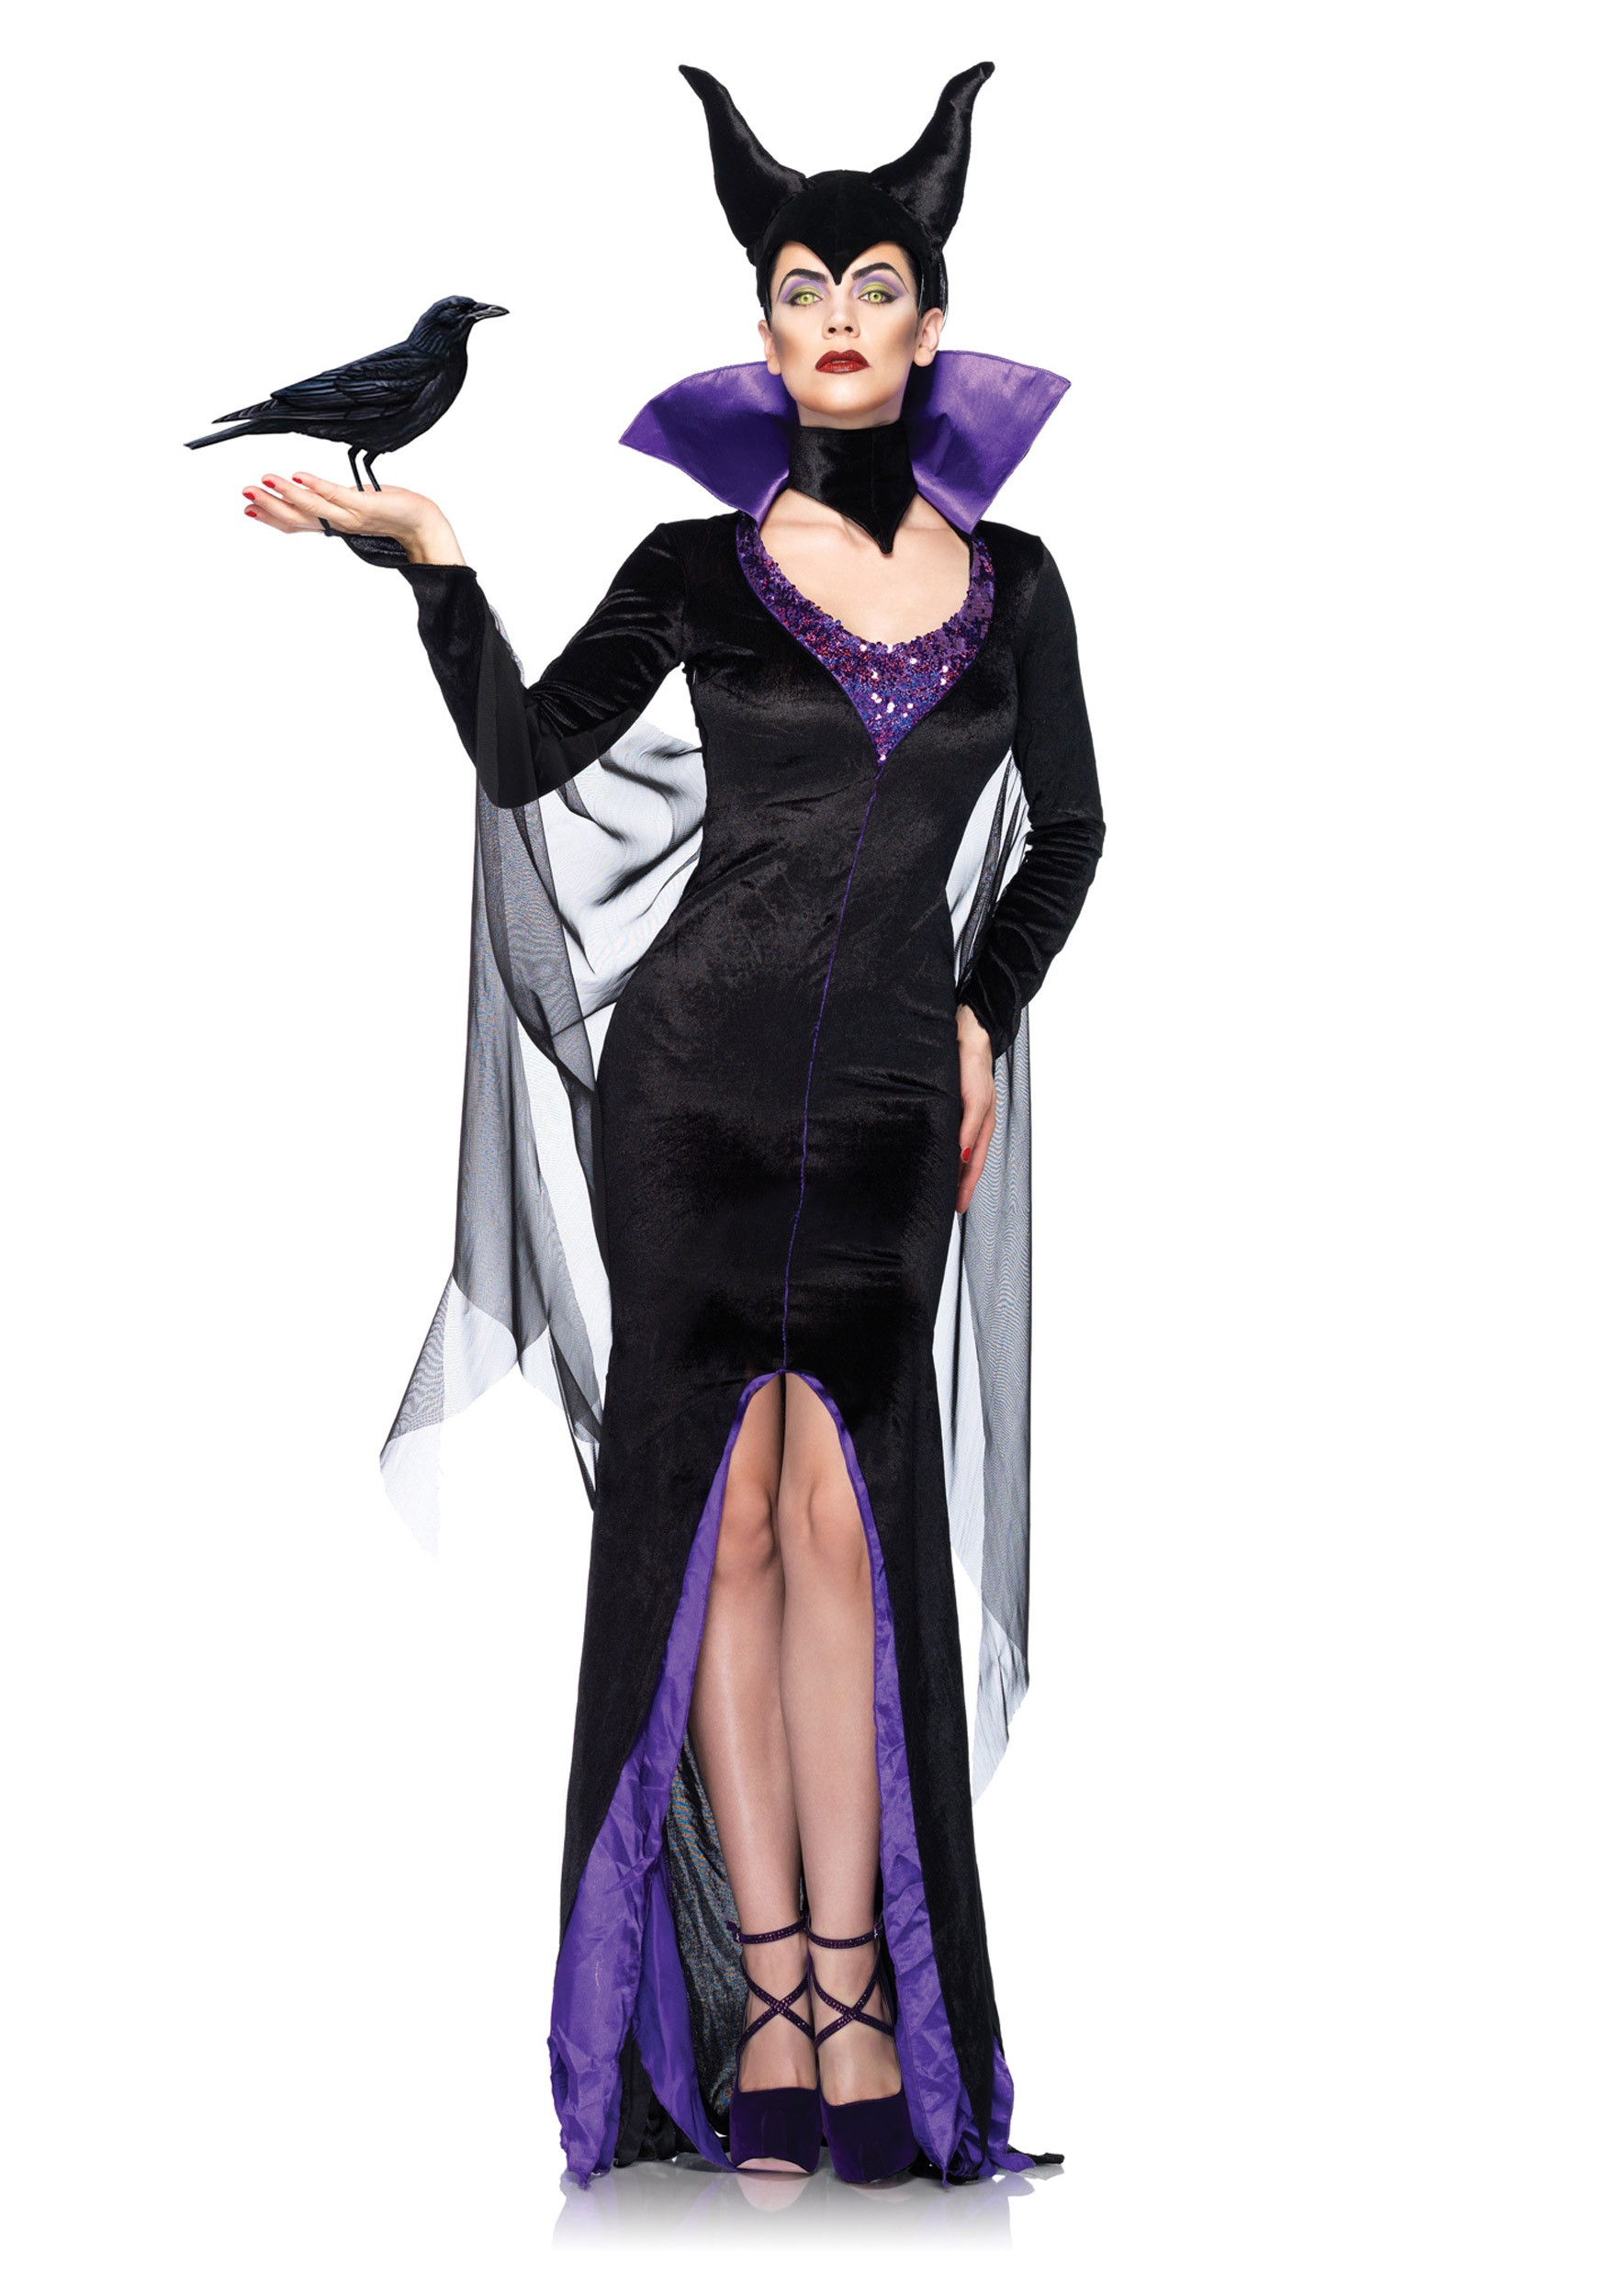 Best ideas about Maleficent DIY Costumes . Save or Pin Womens Disney Maleficent Costume Now.